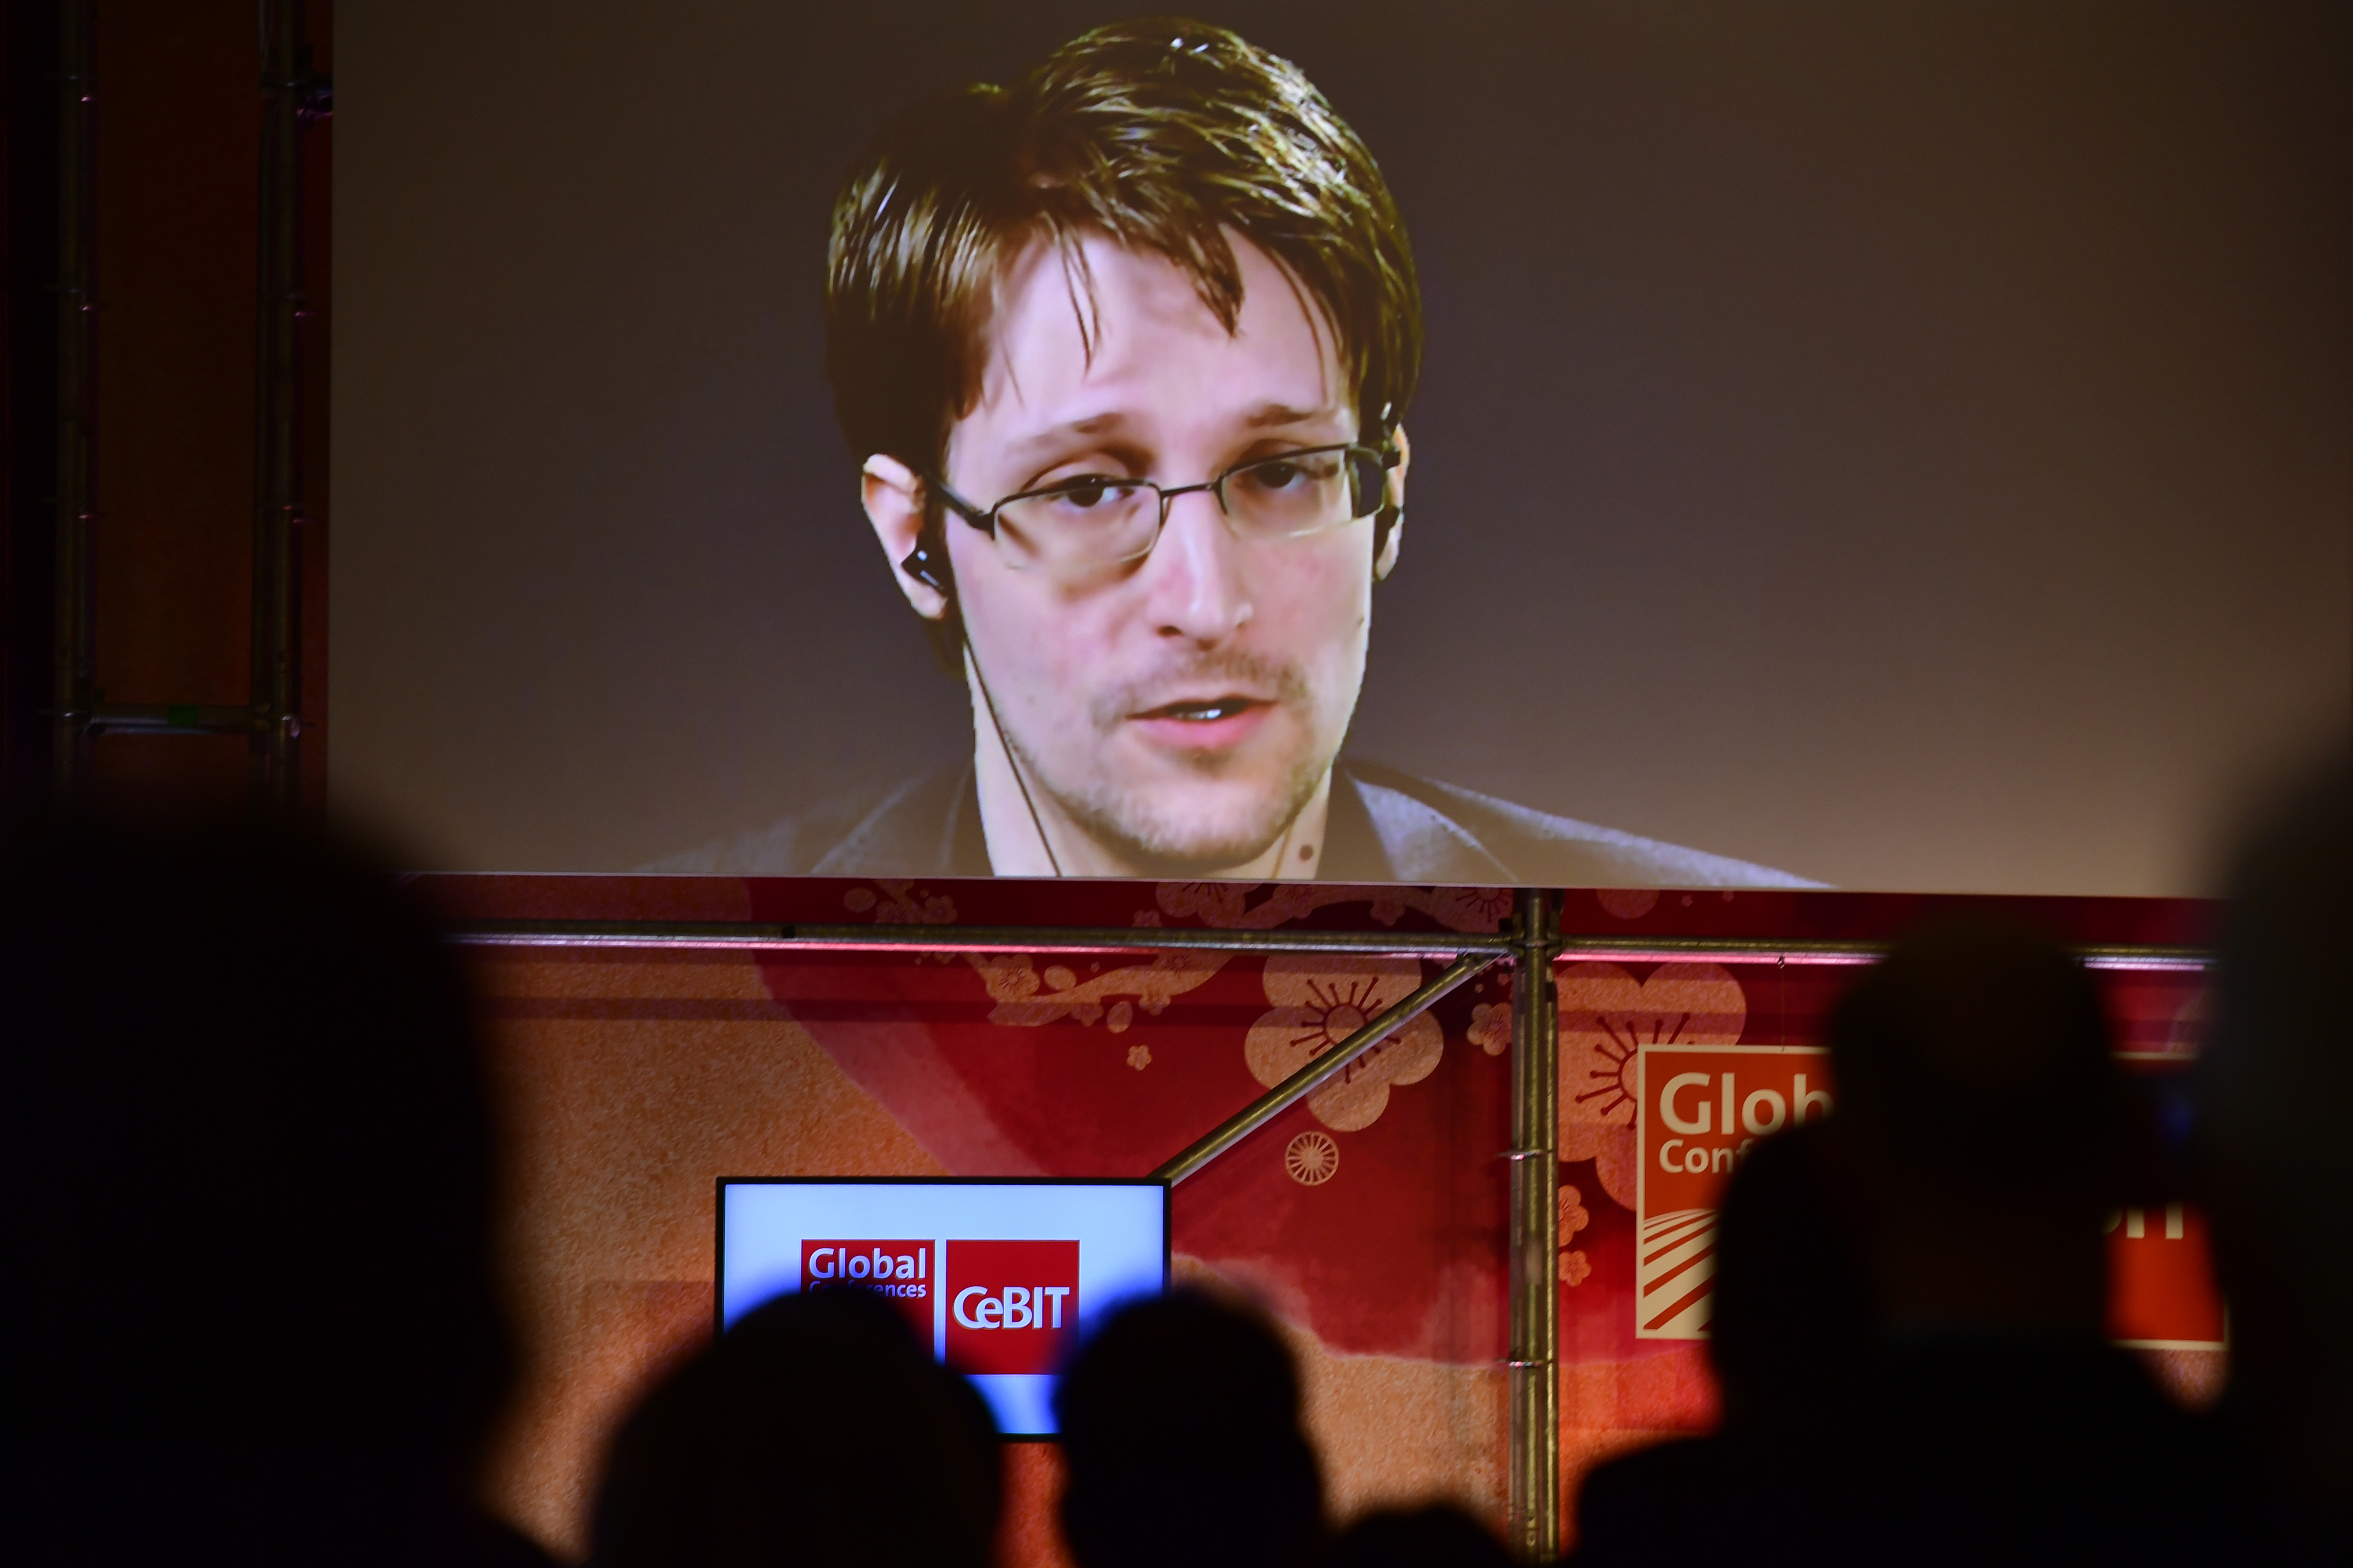 Whistleblower Edward Snowden broadcast live from Russia at the CeBIT 2017 Technology Trade Fair on March 21, 2017 in Hanover, Germany.